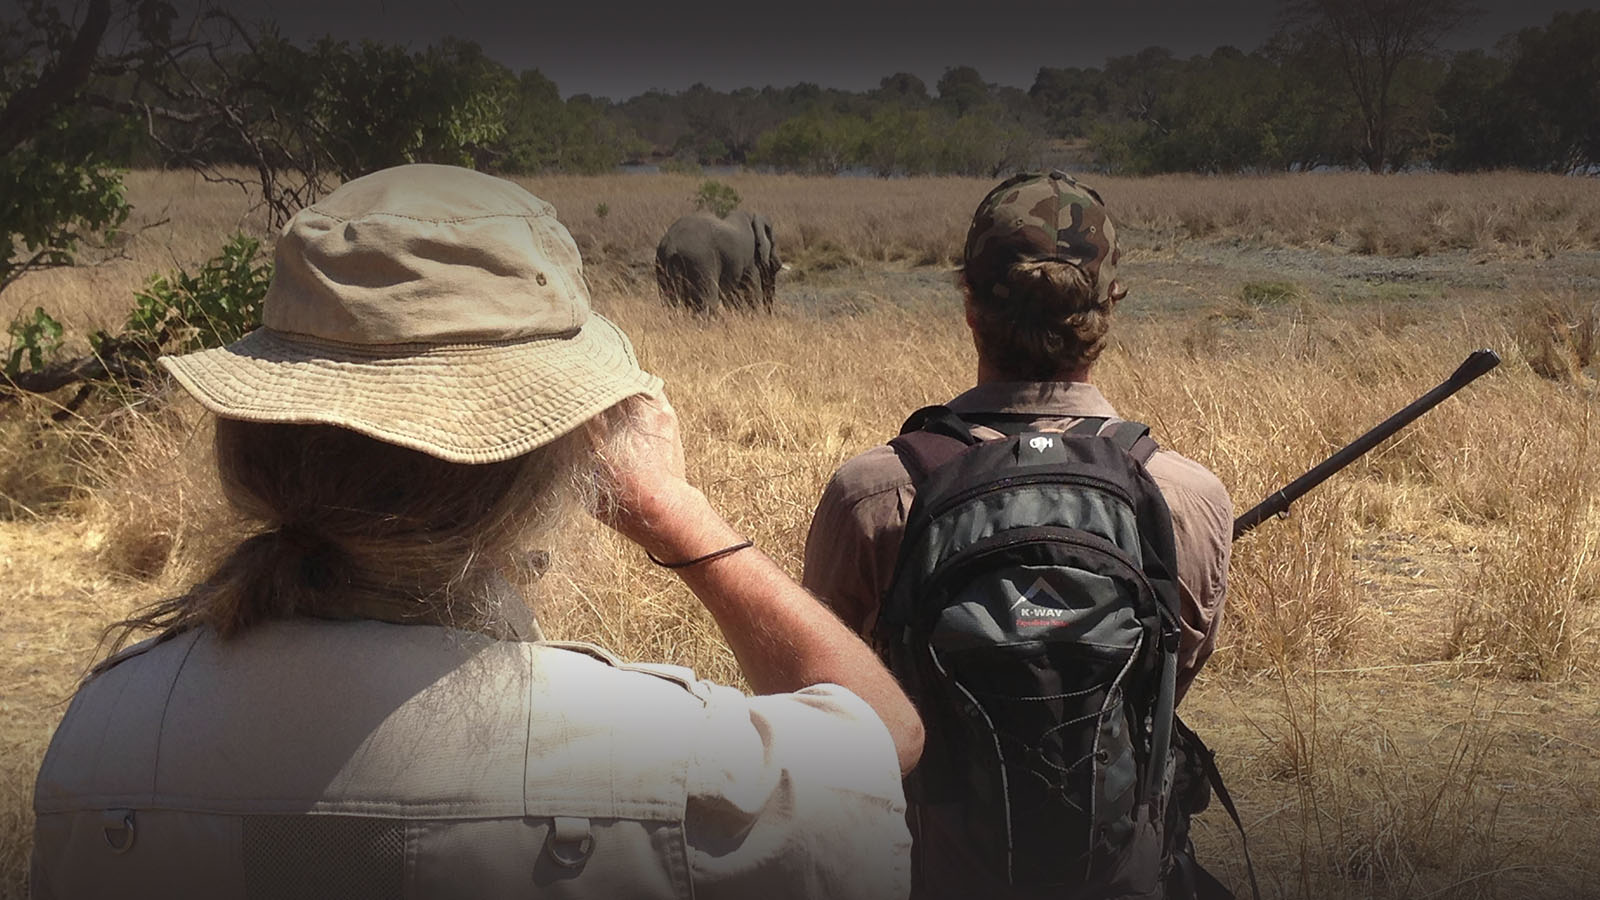 musekese-camp-lodge-zambia-in-style-safari-packages-lodges-kafue-national-park-conservation-guided-walking-safari